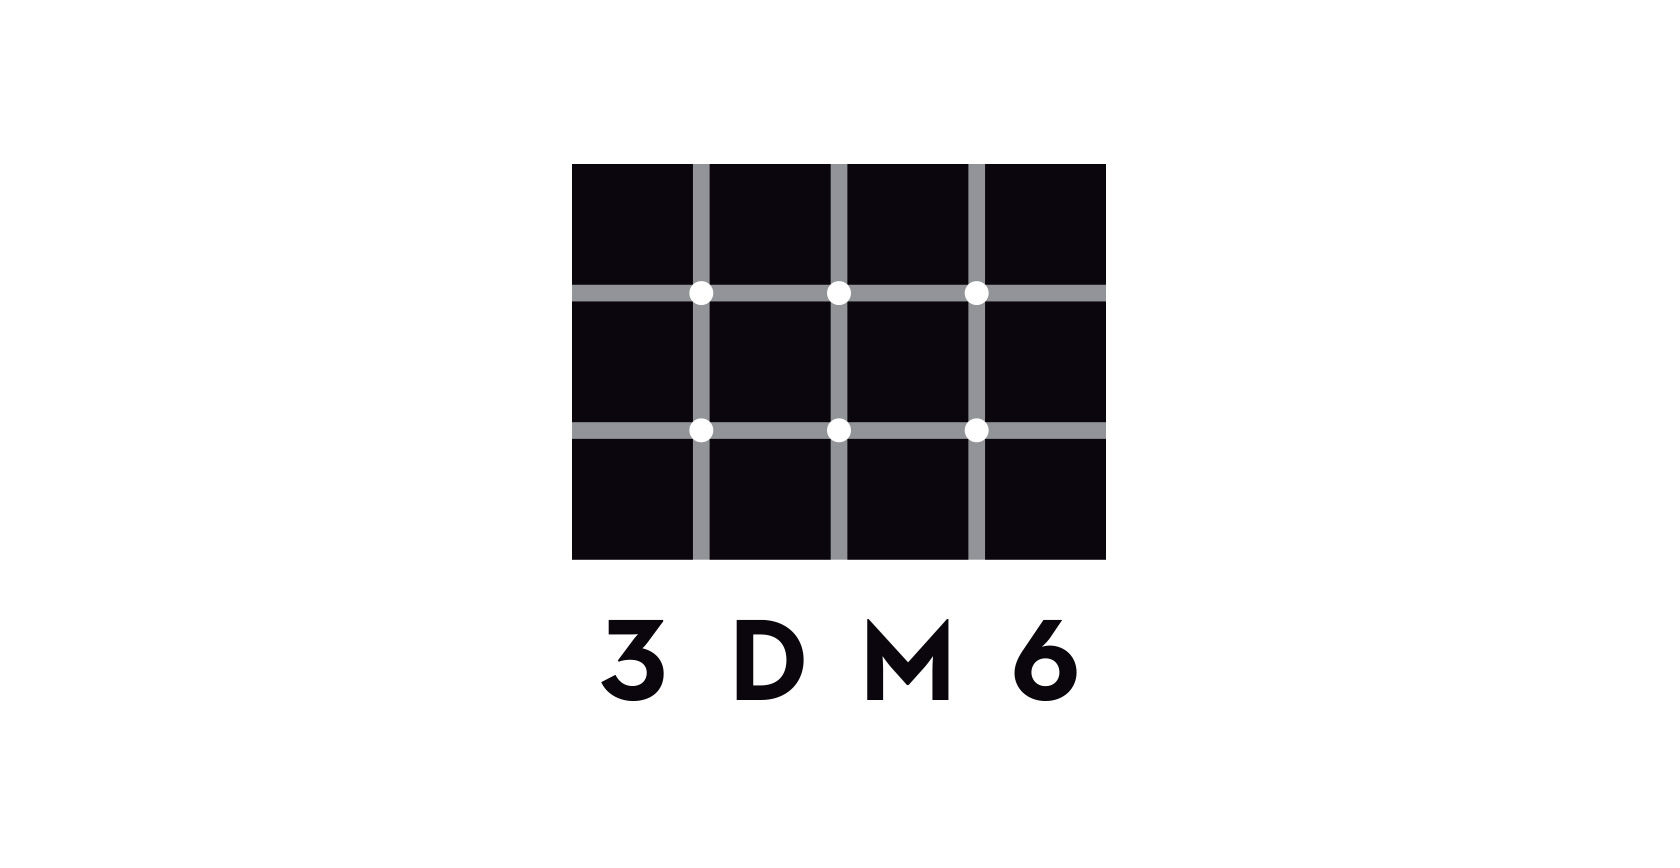 3DM6 Brand Identity Design by Furia